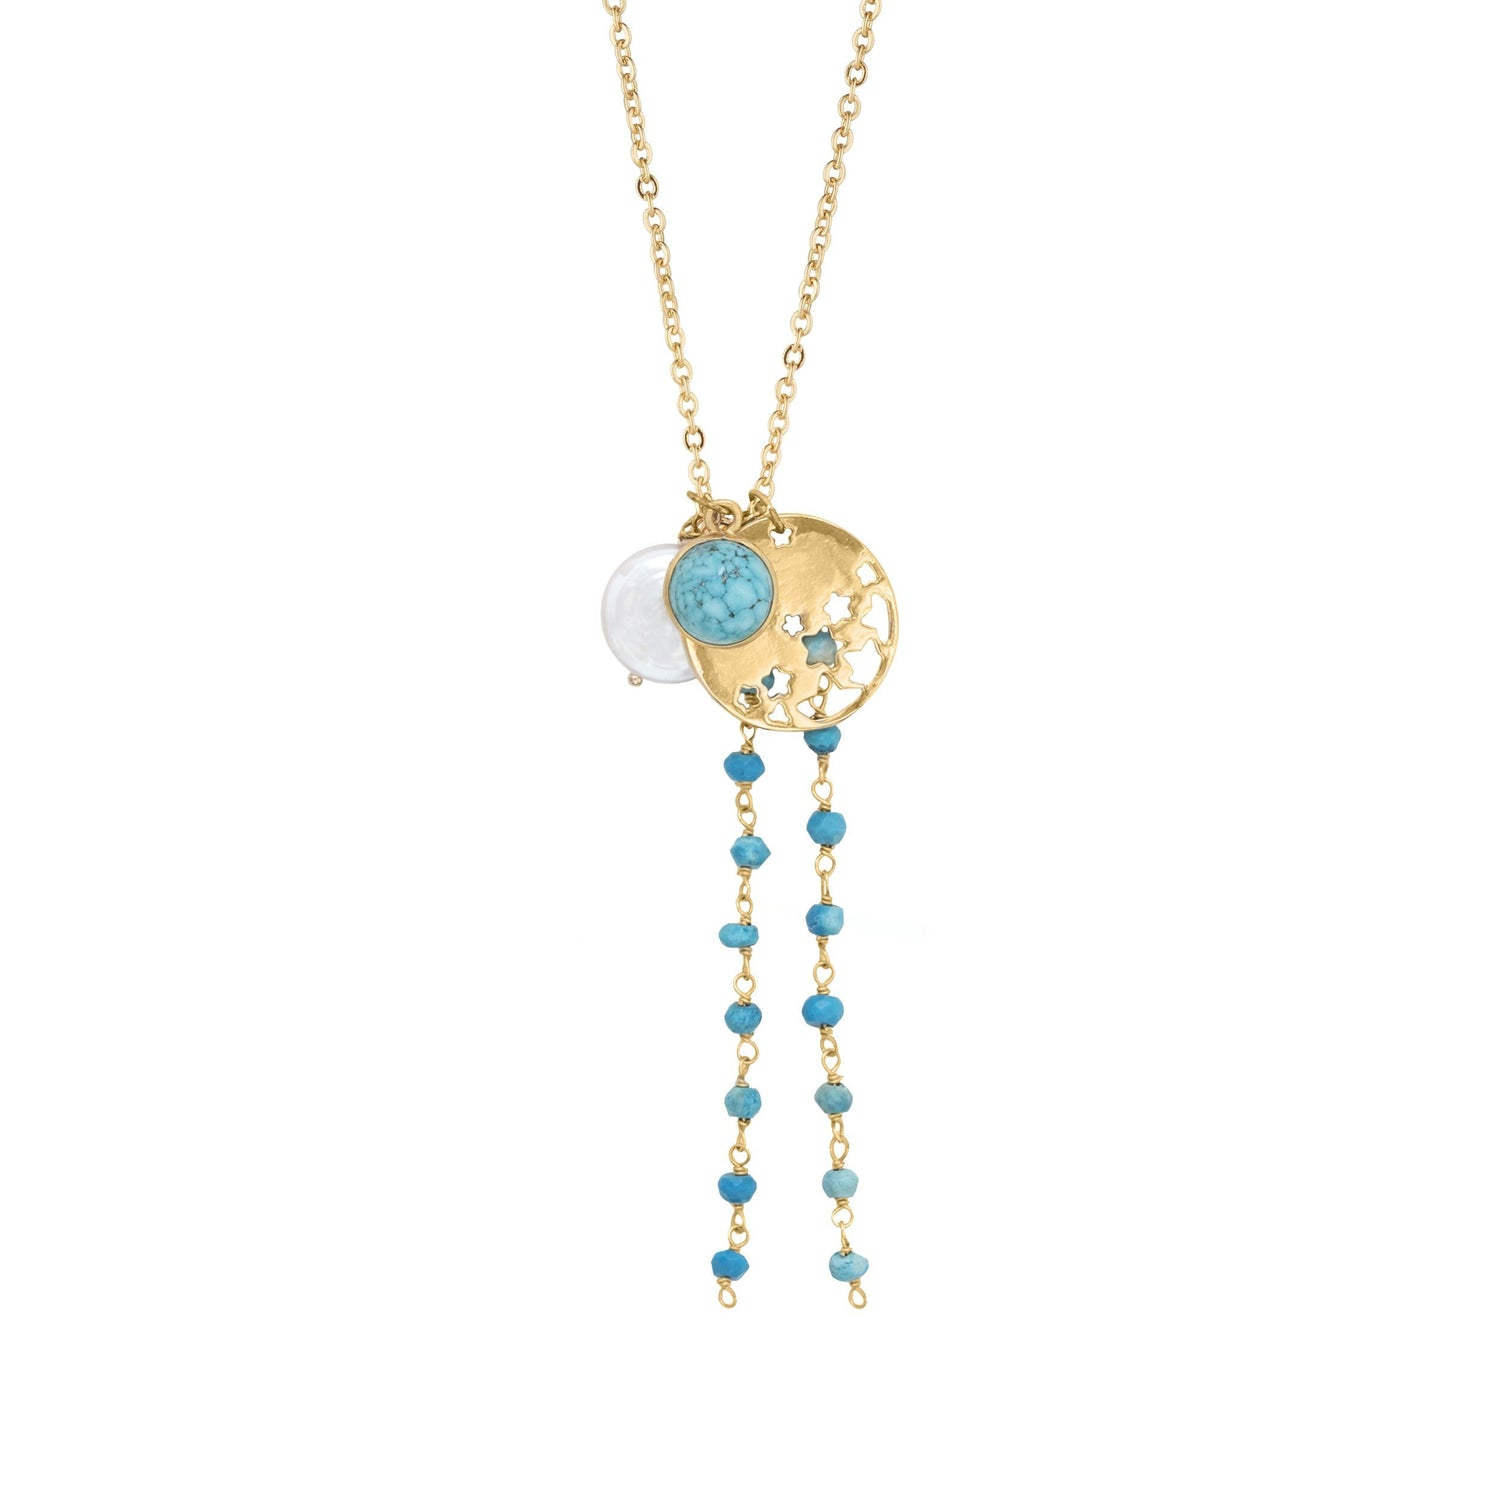 Turquoise & Pearl Necklace With Constellation Charm For Your Past, Present & Future